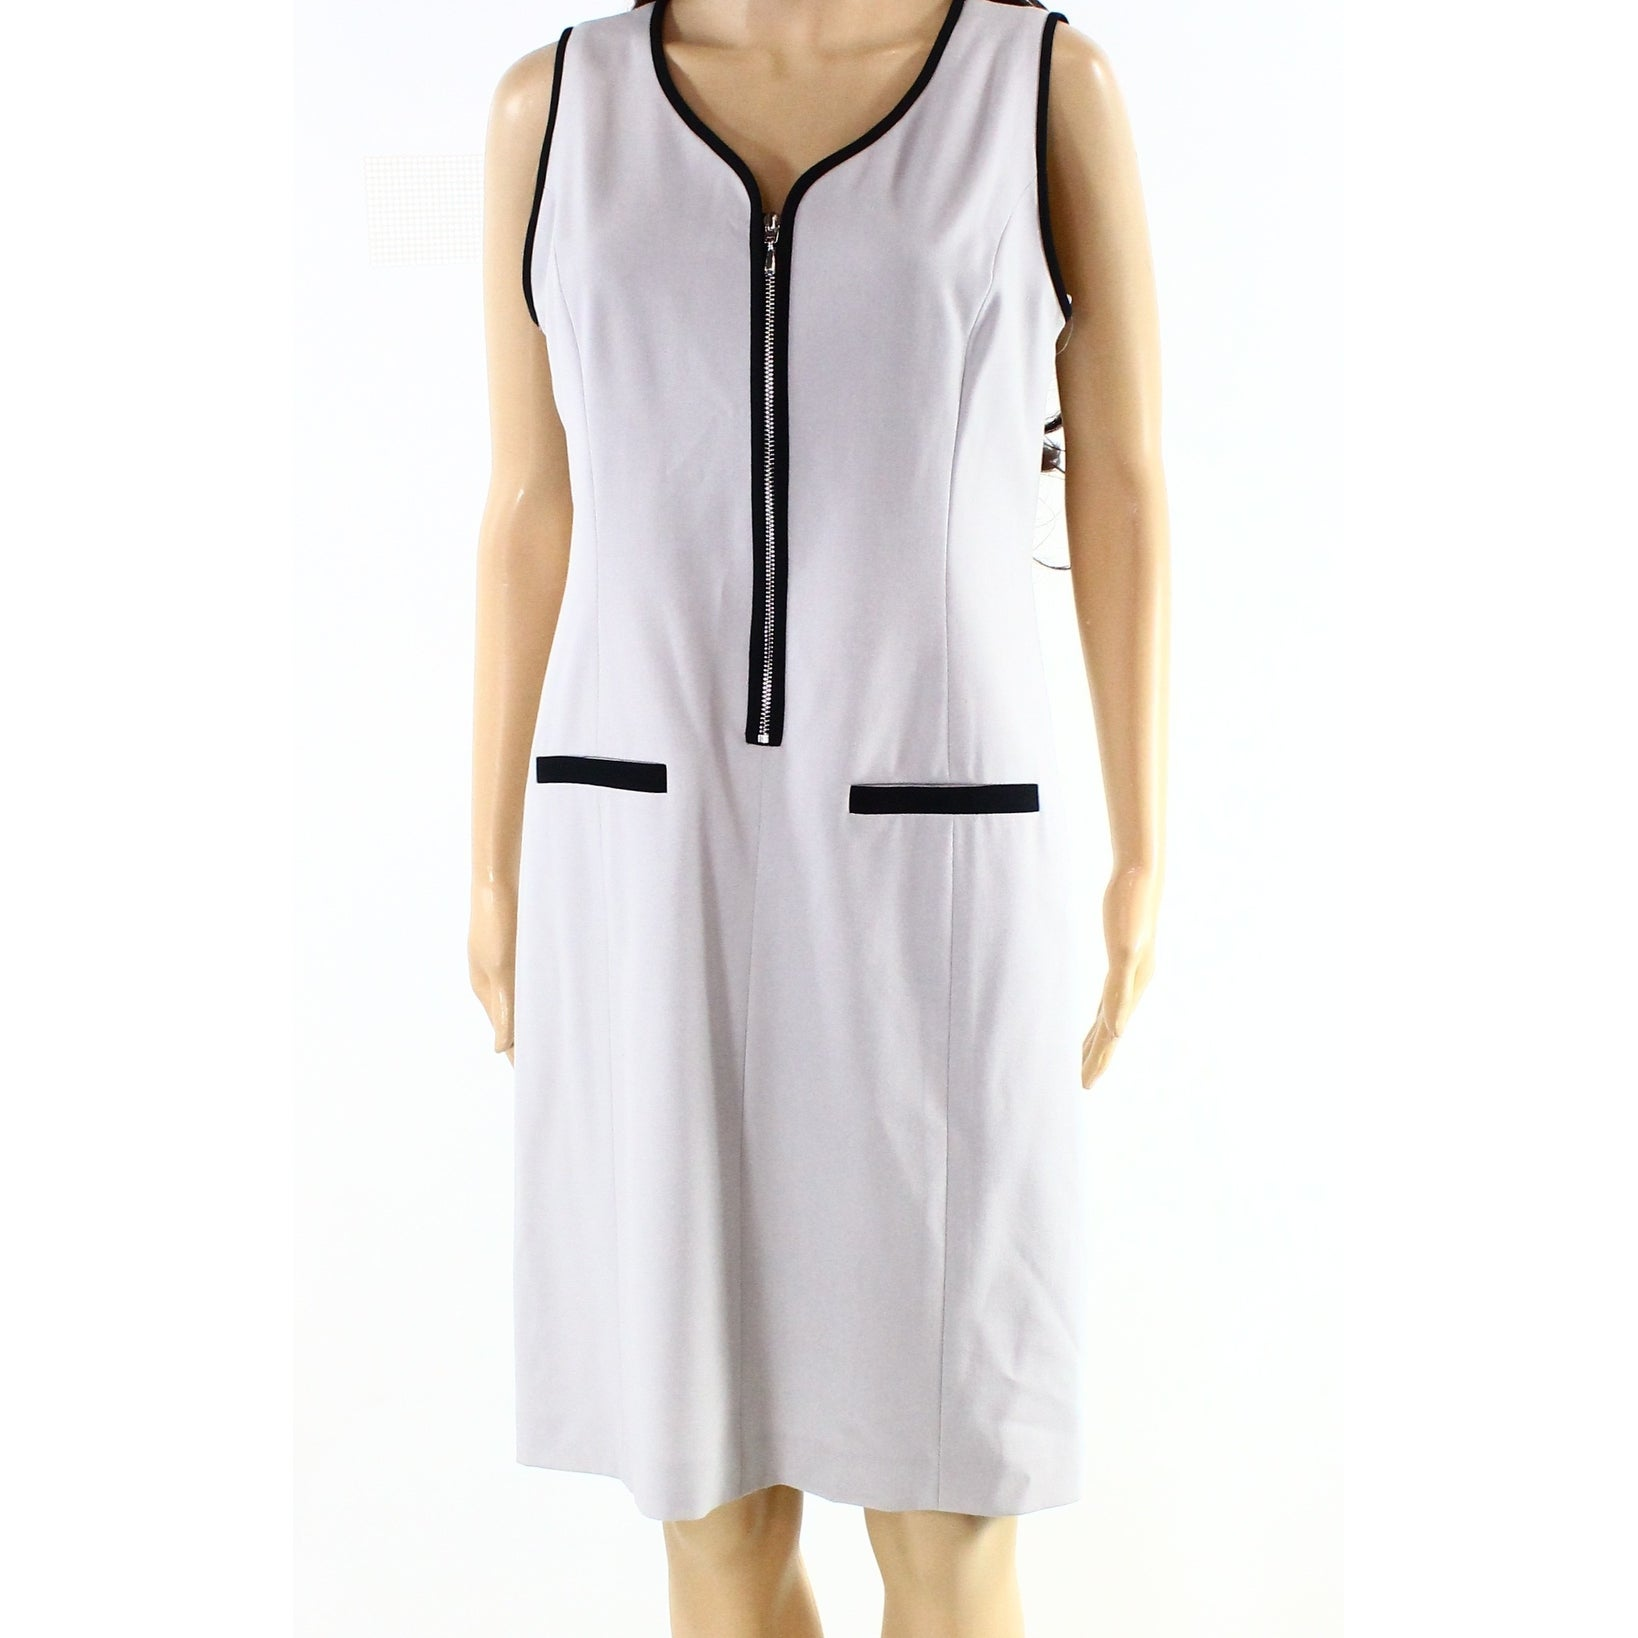 6c511a88abc Shop Nine West NEW Gray Women Size 12 V-Neck Contrast Zip Front Sheath Dress  - Free Shipping On Orders Over  45 - Overstock - 20869580